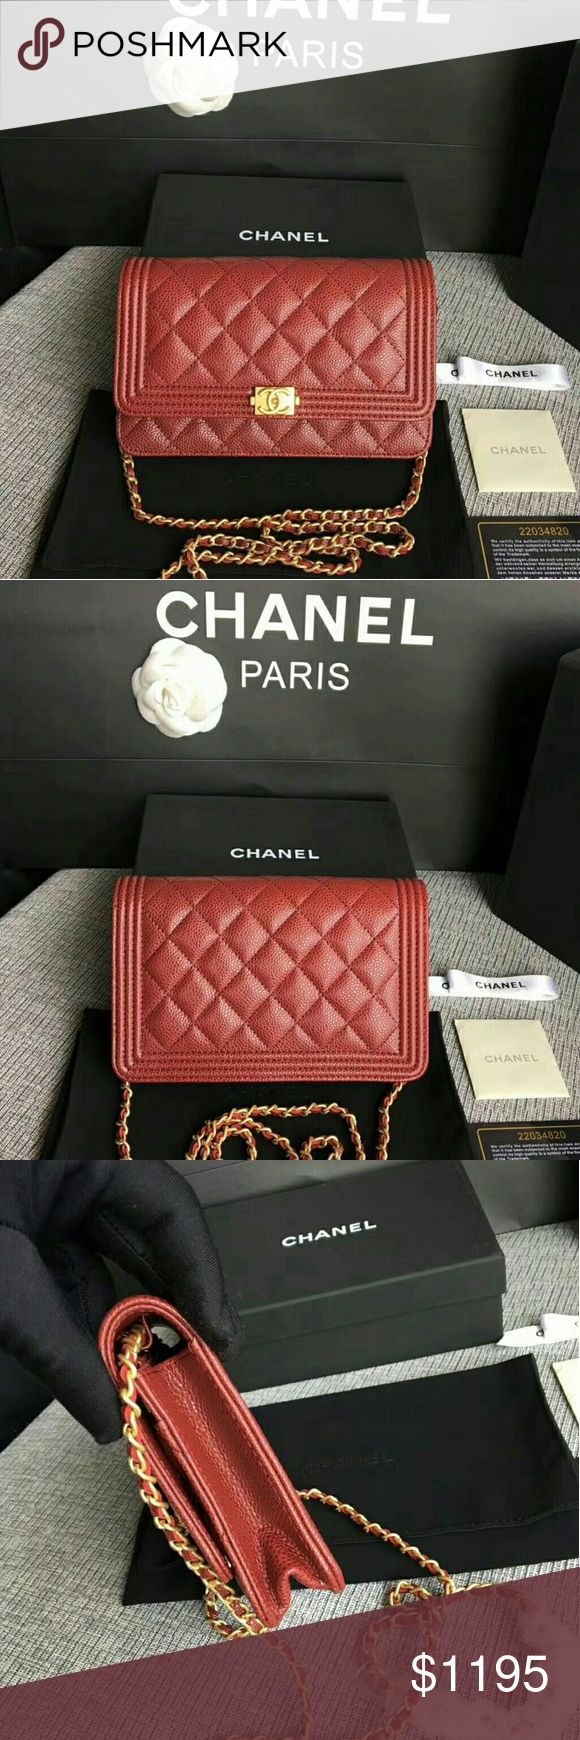 Chanel Red Leather Shoulder Bag *BLACK FRIDAY SALE*  If you would like to purchase this item or learn more about our product listings, please direct message us on Instagram:   @laluxlounge @laluxlounge @laluxlounge  Check out our customer reviews to ensure that your purchase will be worthwhile!  Product packaging and shipping times vary per item CHANEL Bags Shoulder Bags